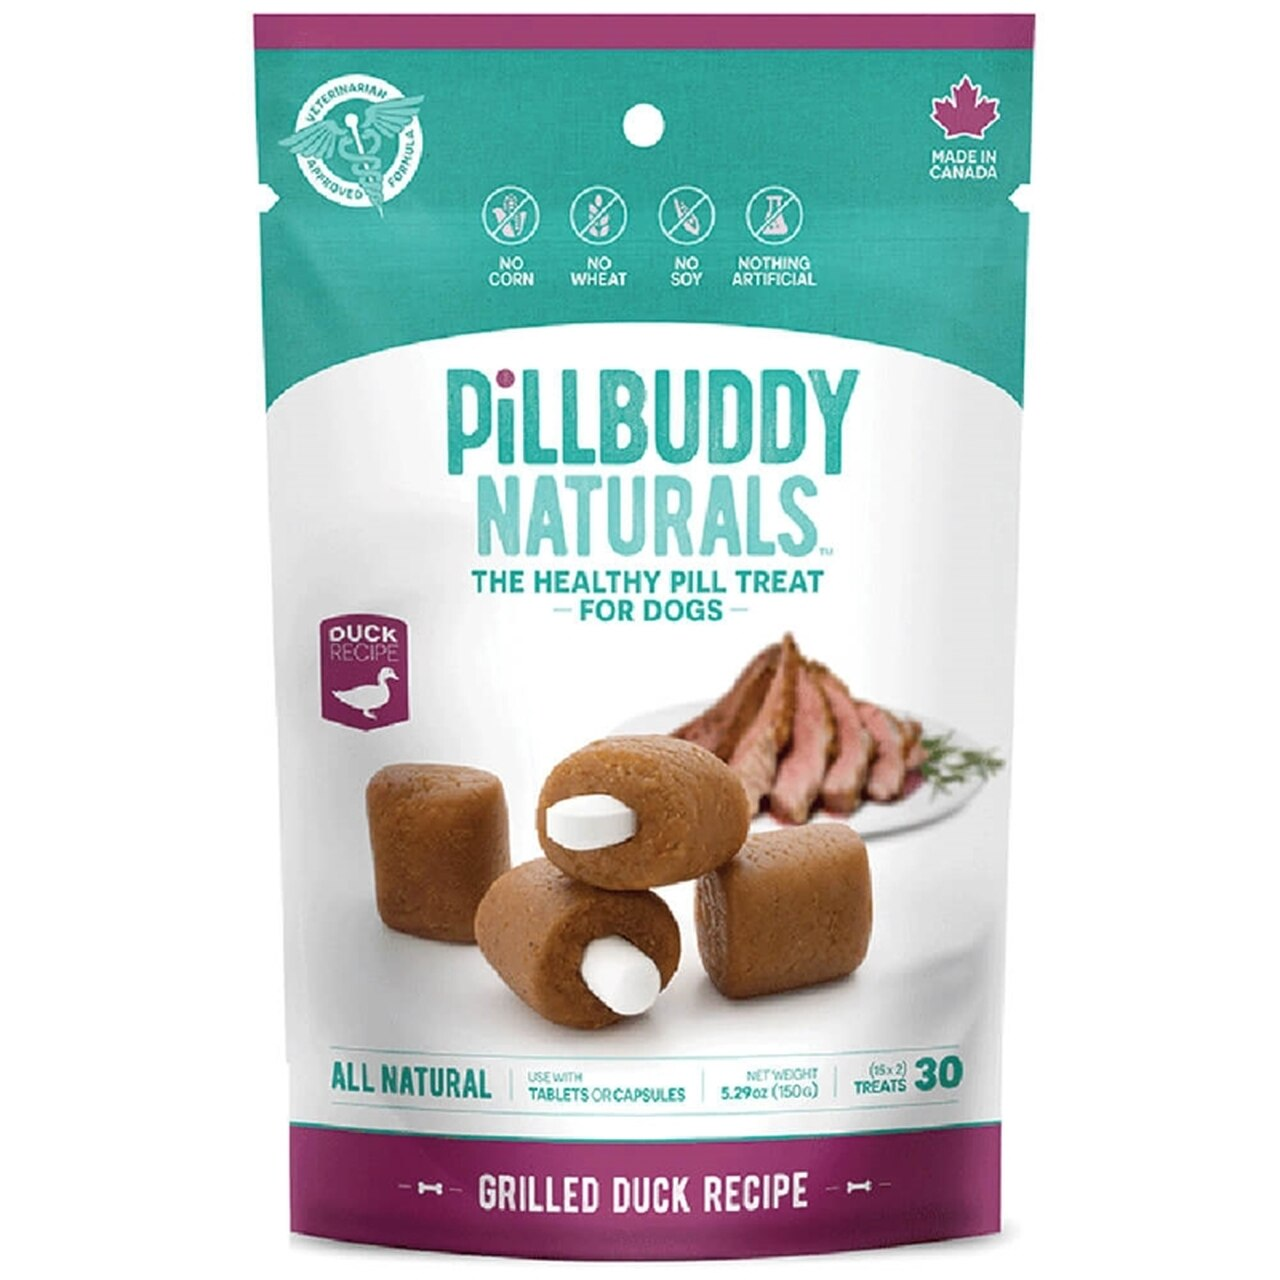 Pill Buddy Naturals Grilled Duck Recipe Pill Treats for Dogs, 5.29-oz